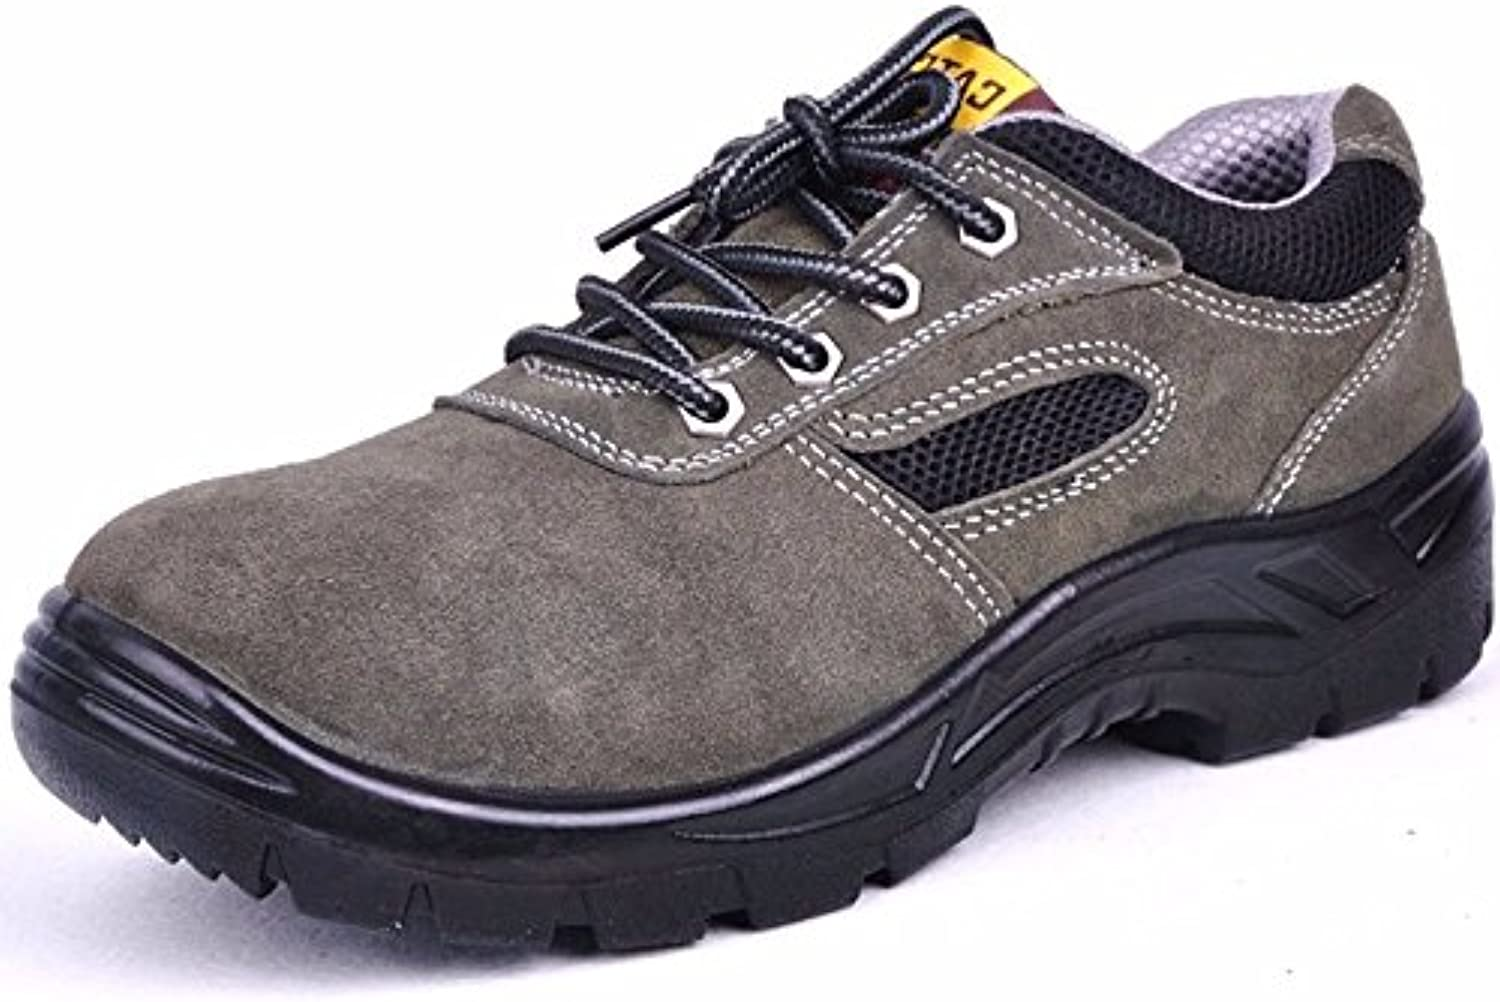 Men's outdoor safety shoes, shoes, comfortable and breathable